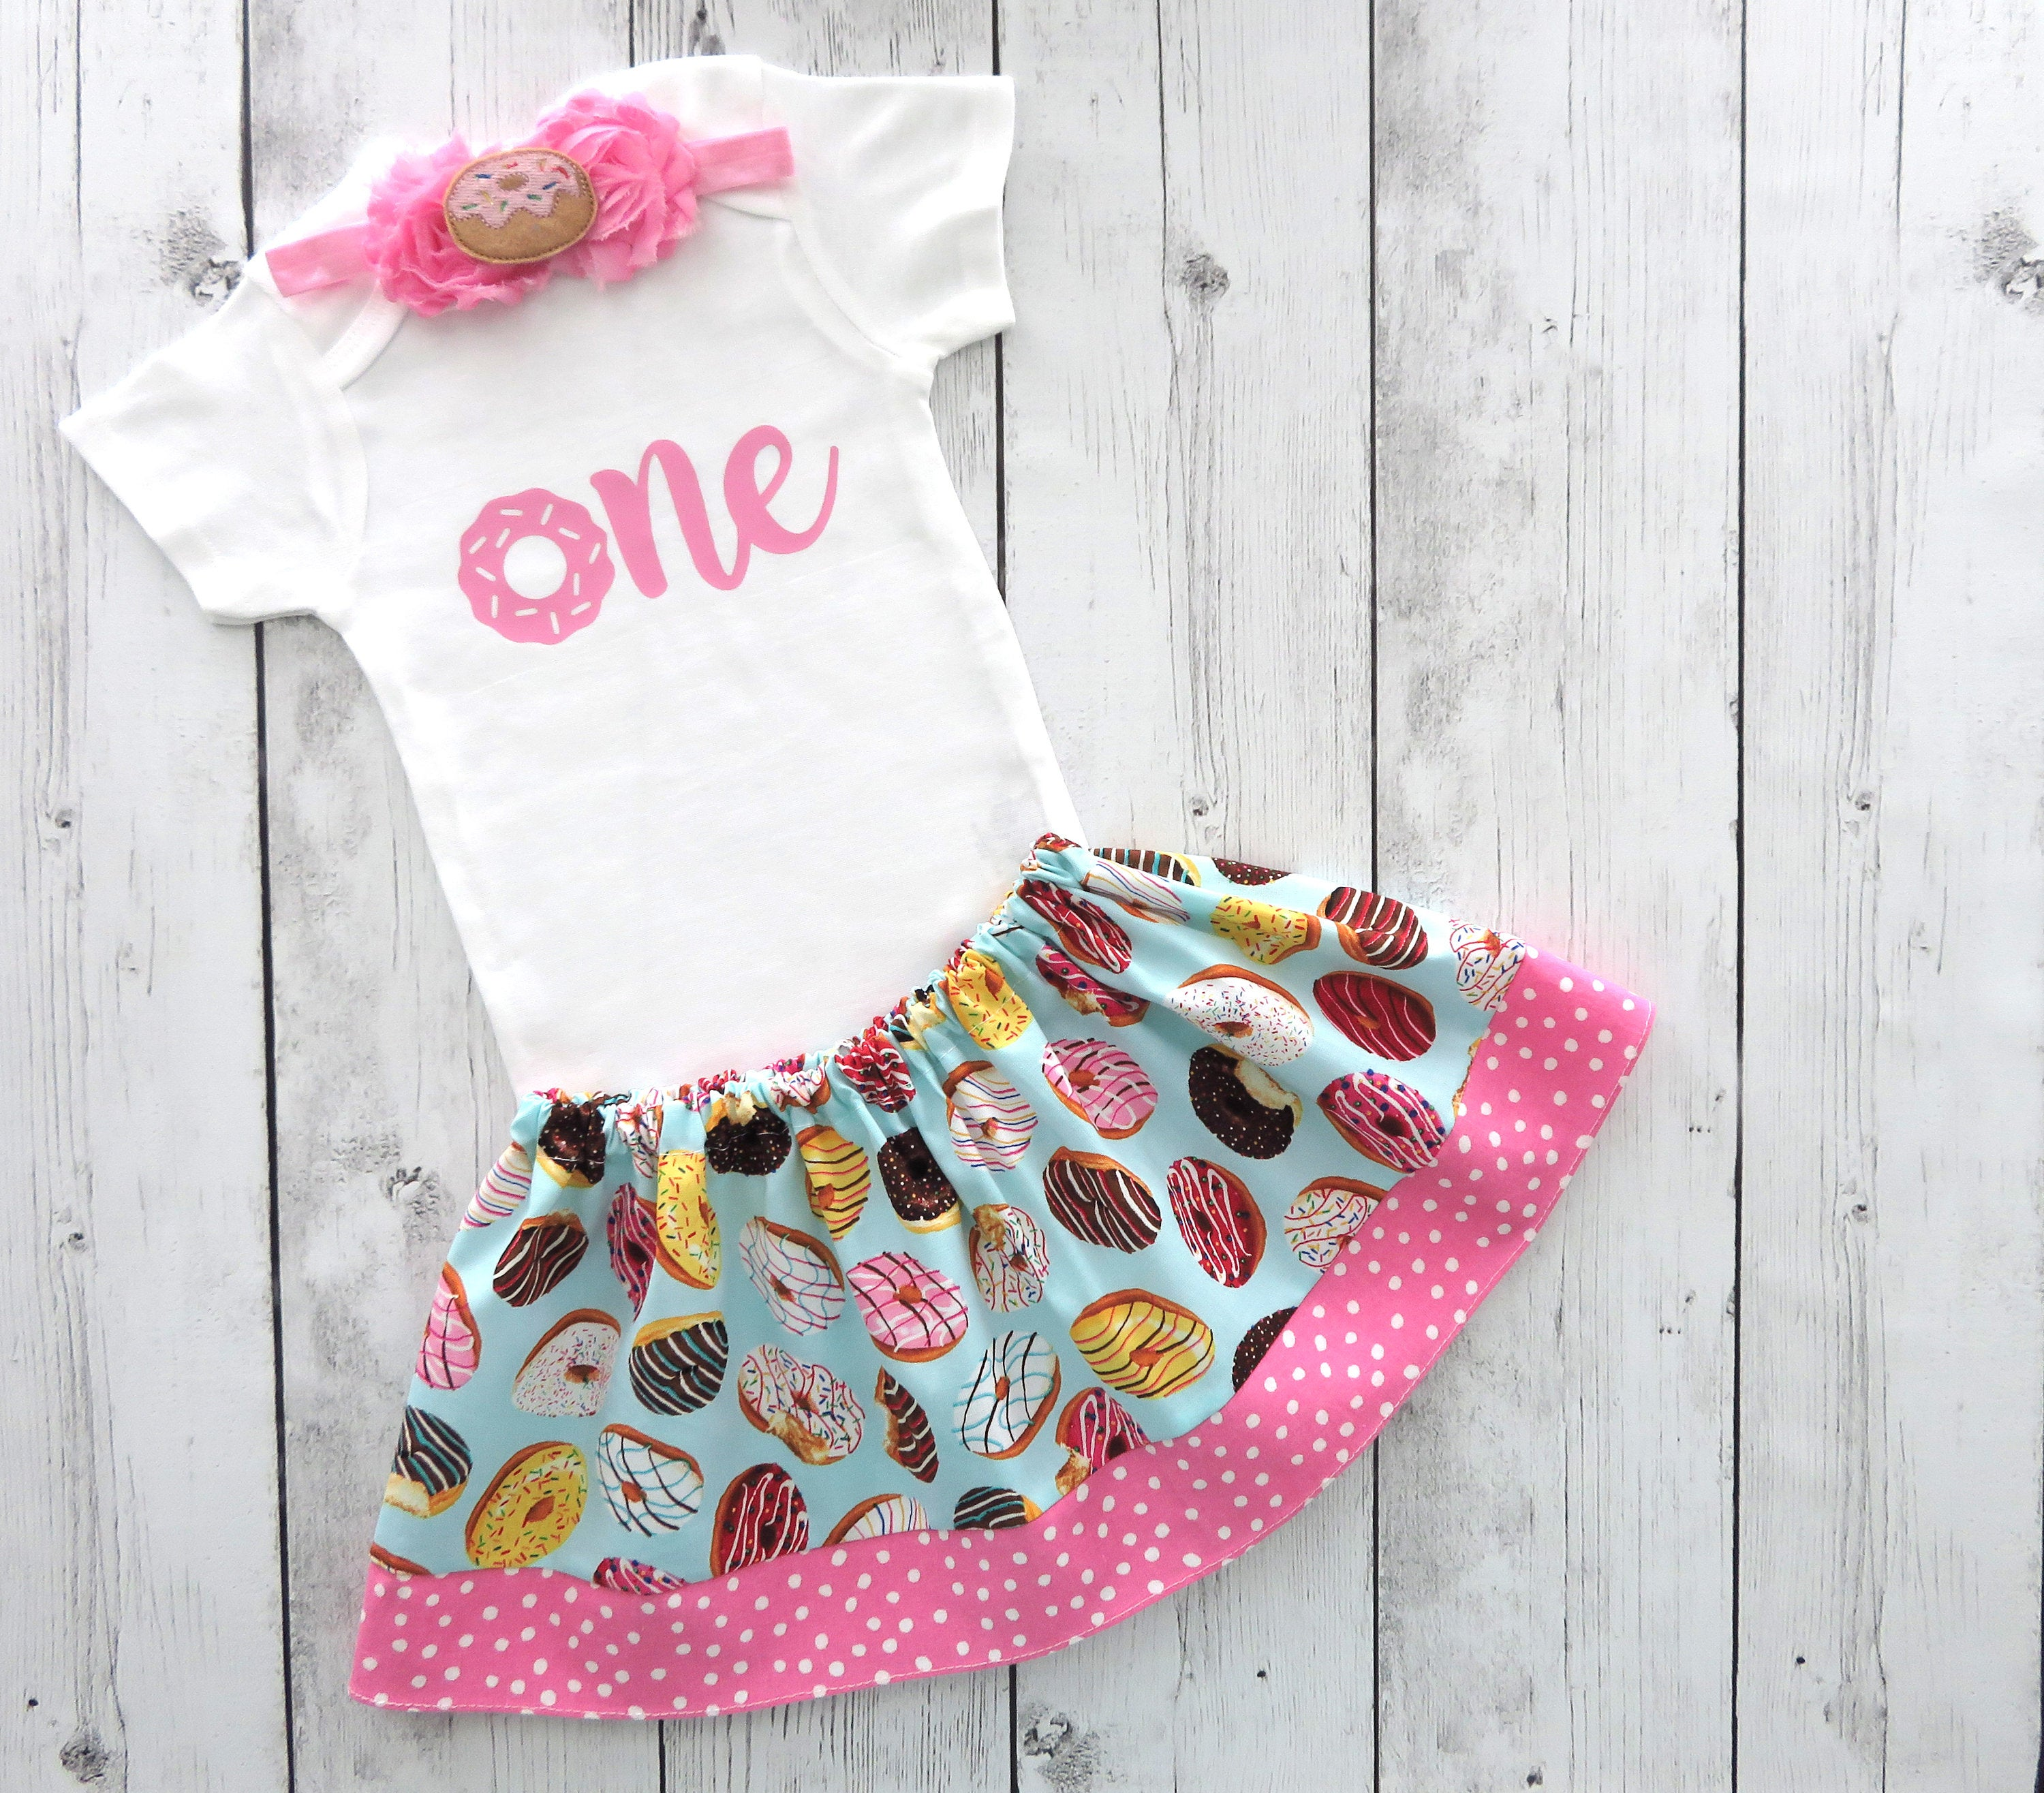 Donut First Birthday Outfit in pink with donut headband - donut 1st birthday,1st bday outfit, donut bday outfit girl, donut grow up